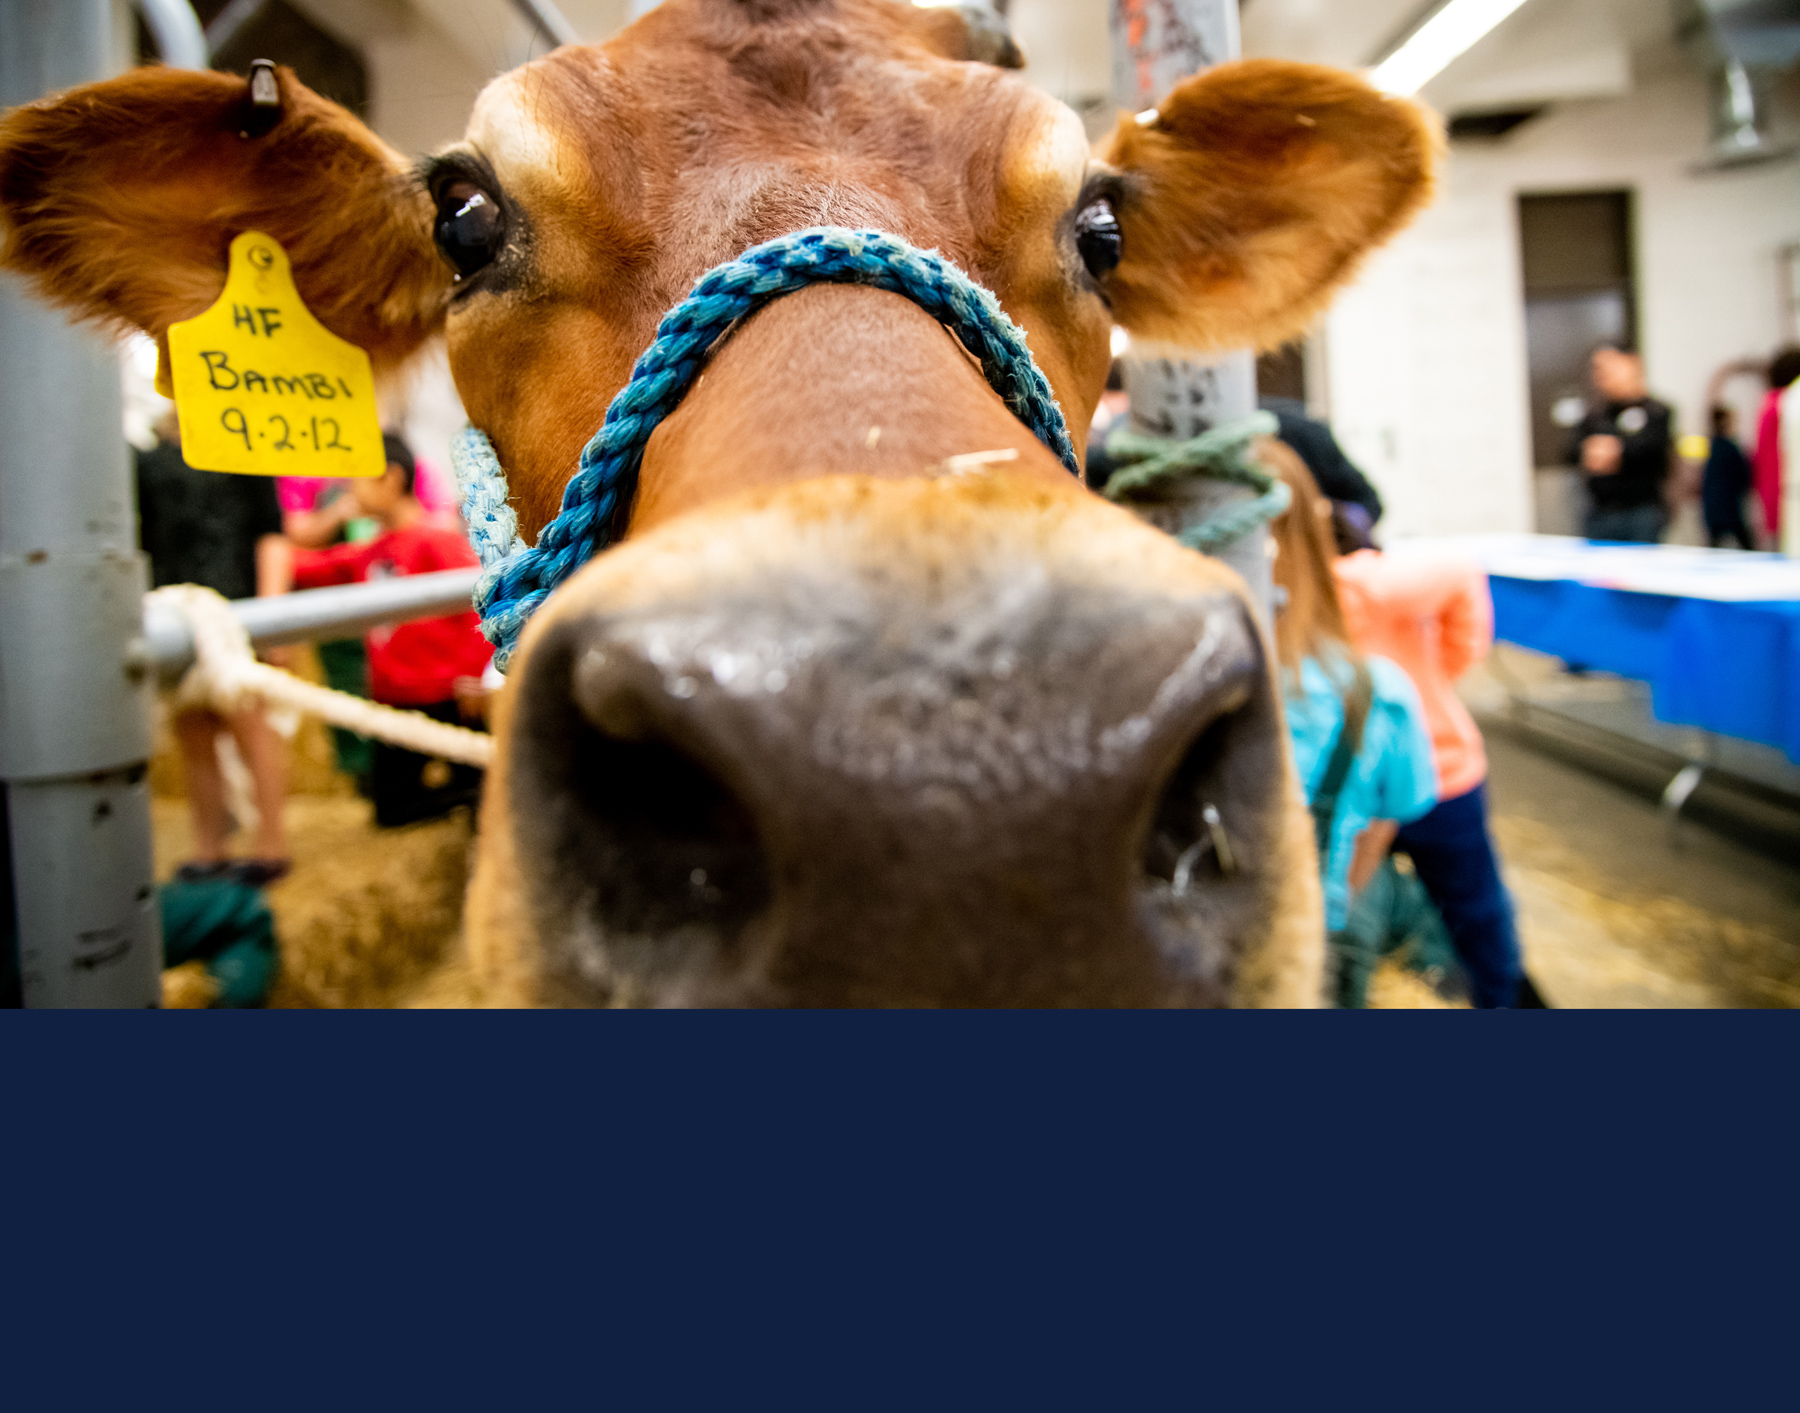 Bambi the cow, available for visits during Vet Med Open House on October 3. Photo courtesy College of Veterinary Medicine